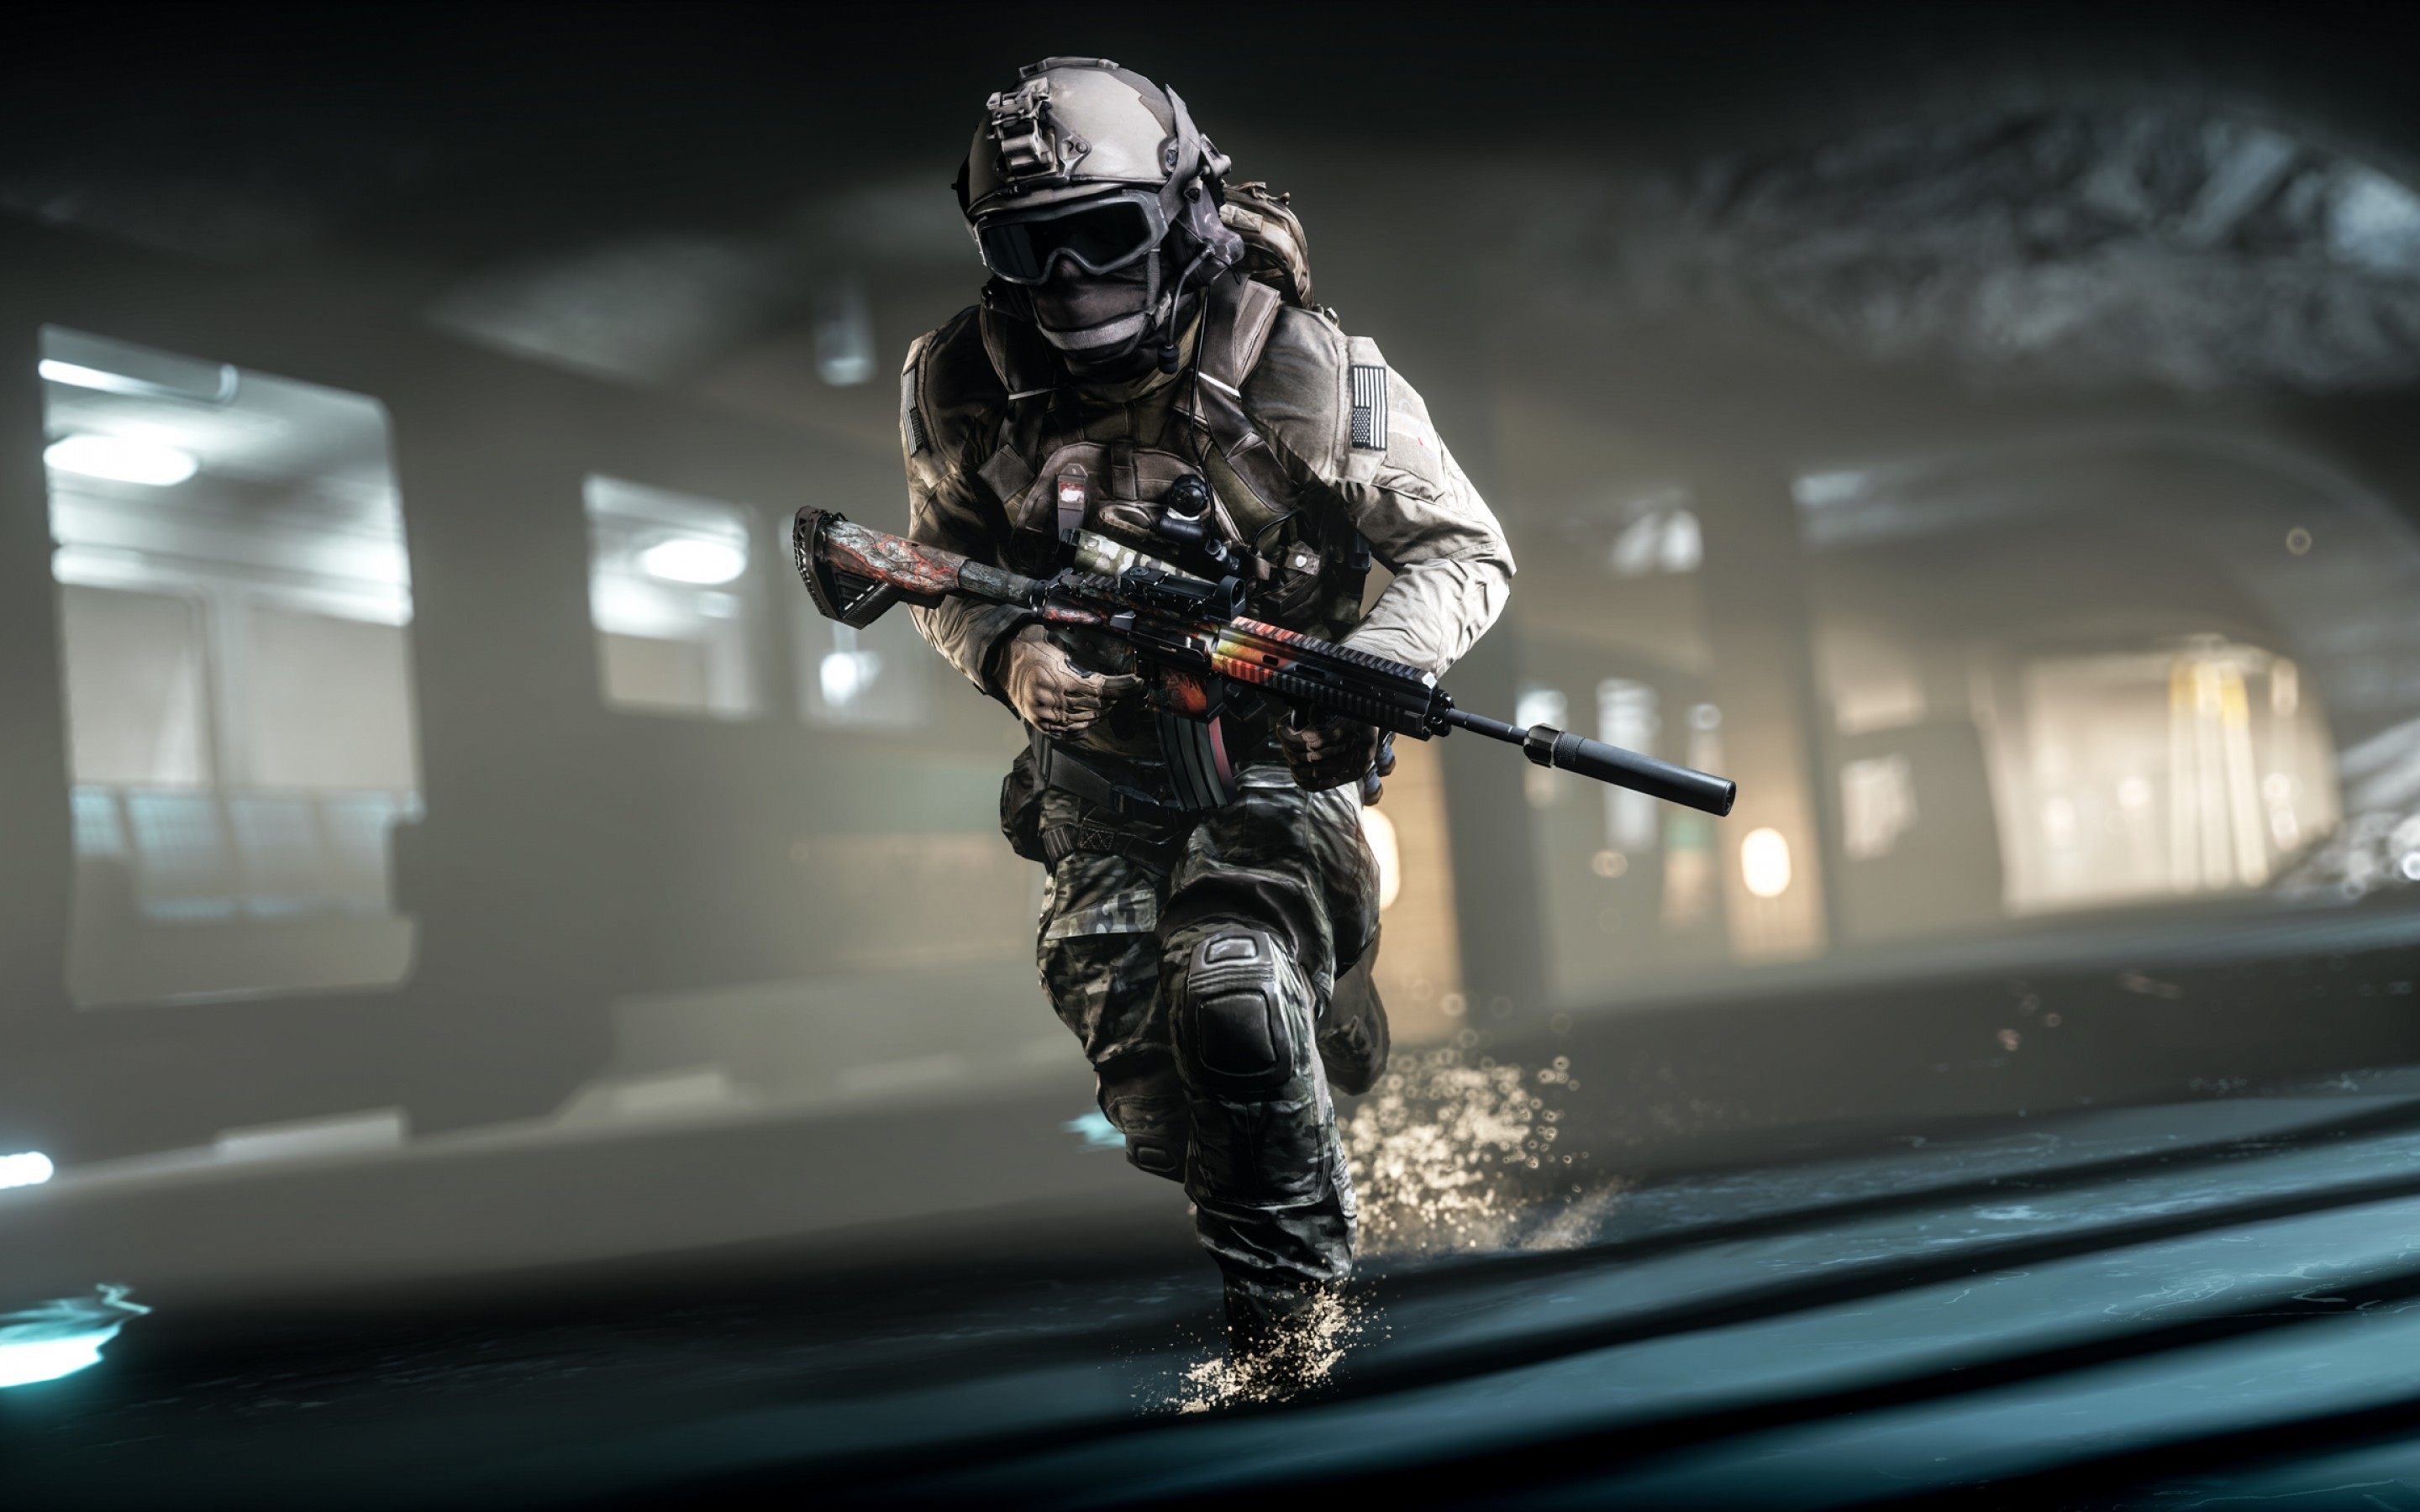 2880x1800 Soldier, Assault rifle, Battlefield 4, HD